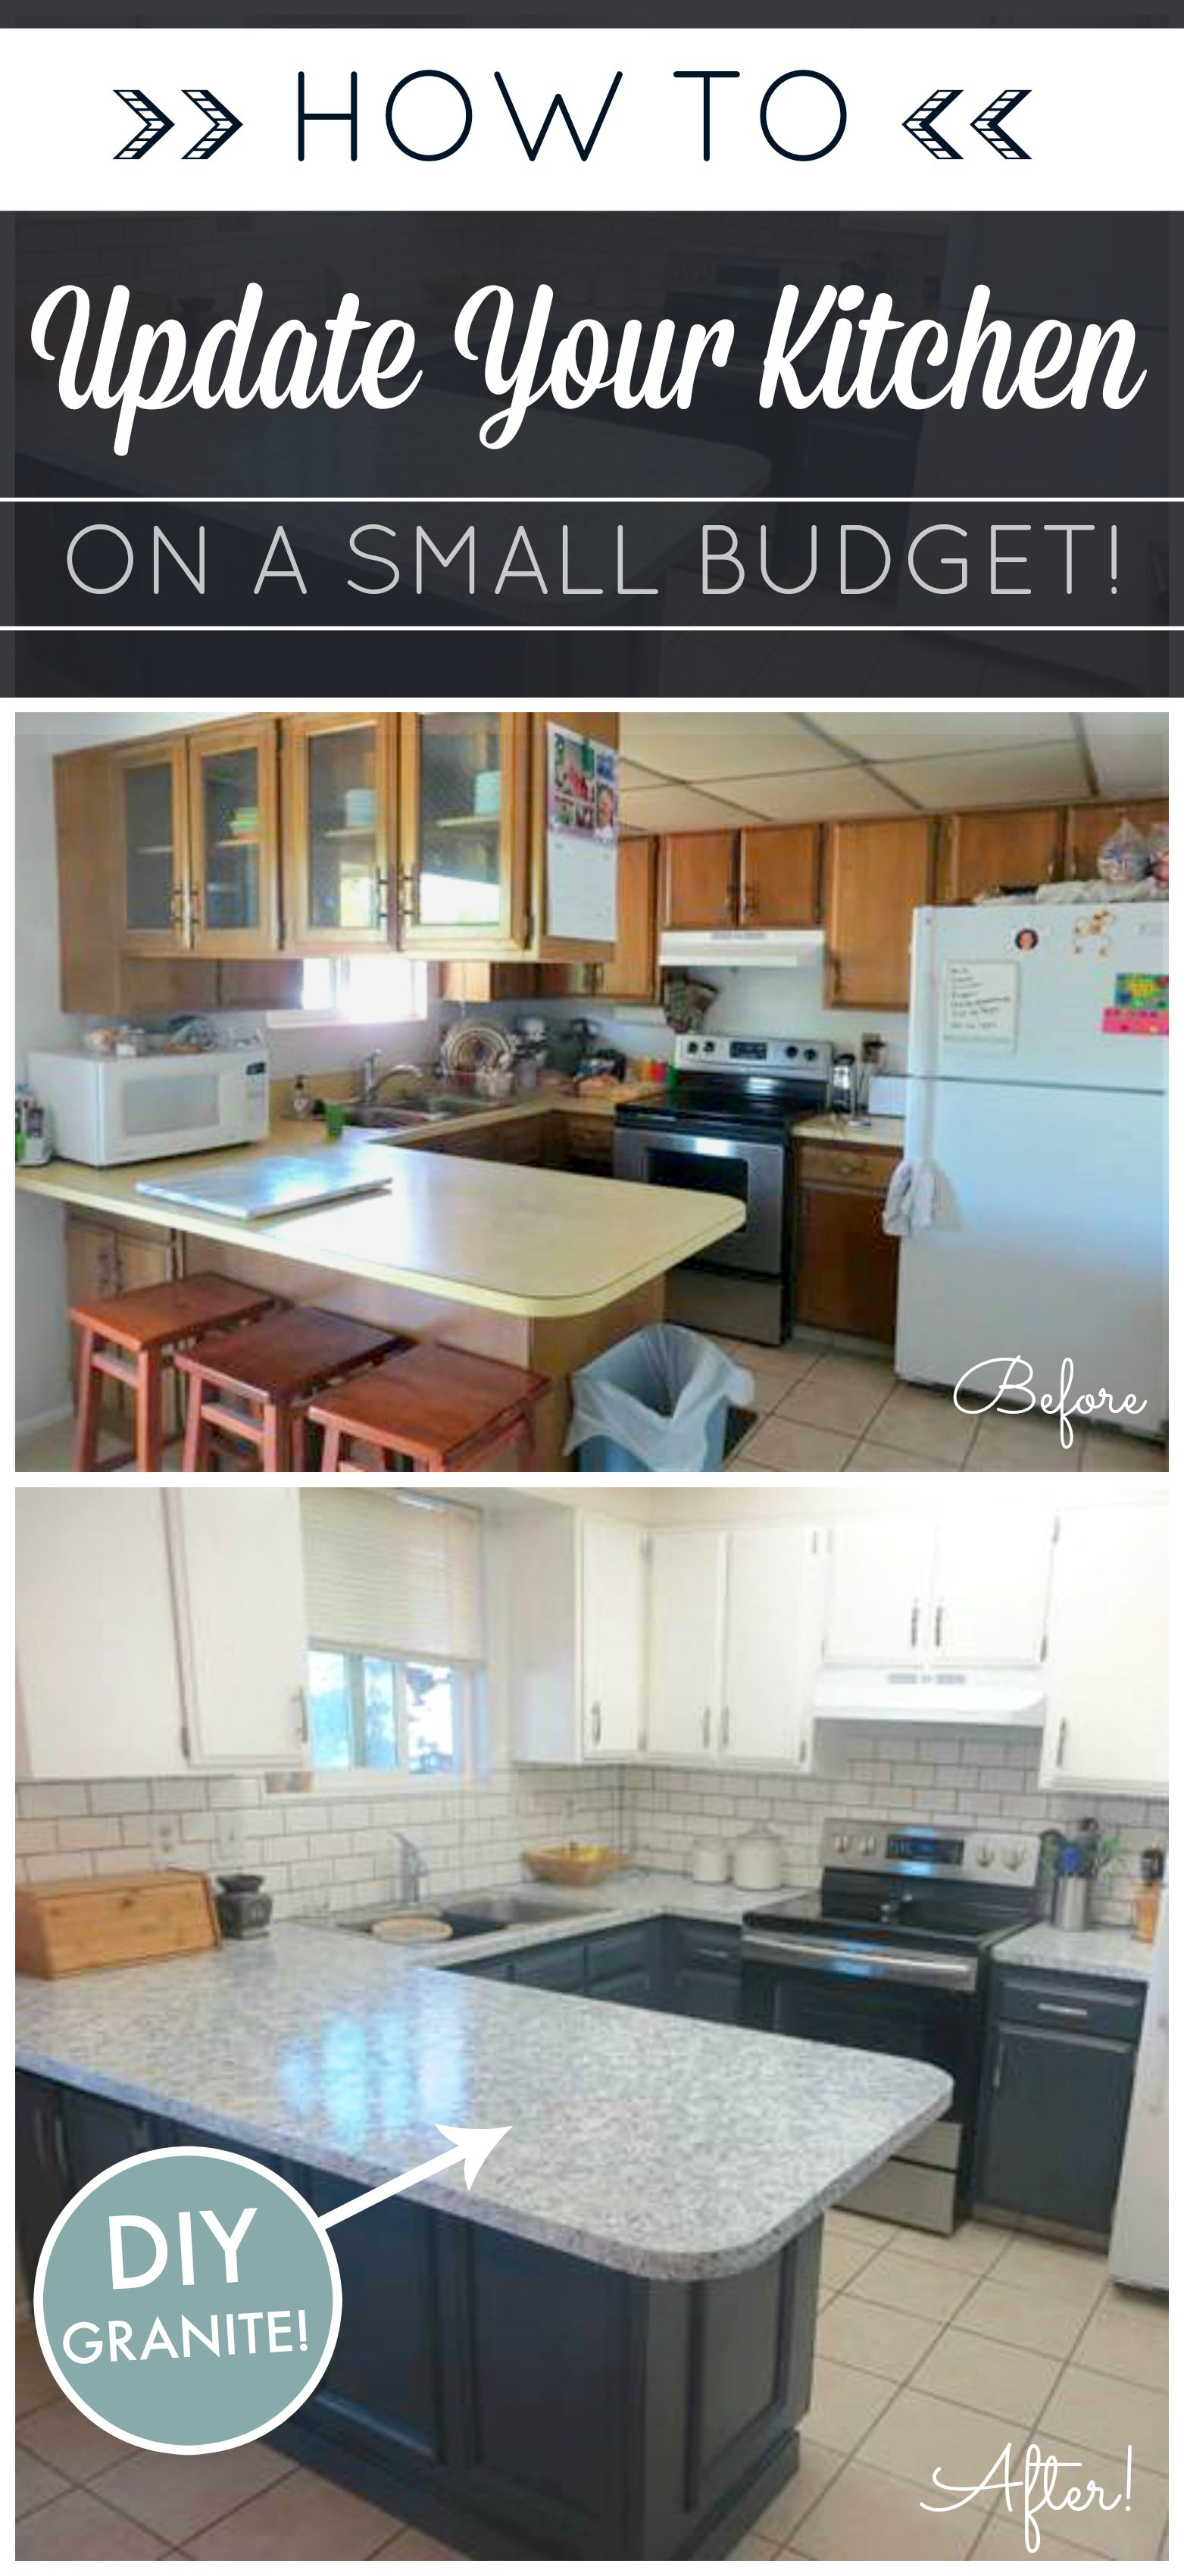 diamond kitchen cabinets DIY Kitchen Makeover on a Budget Giani Granite Countertop Paint kits transform existing counters to